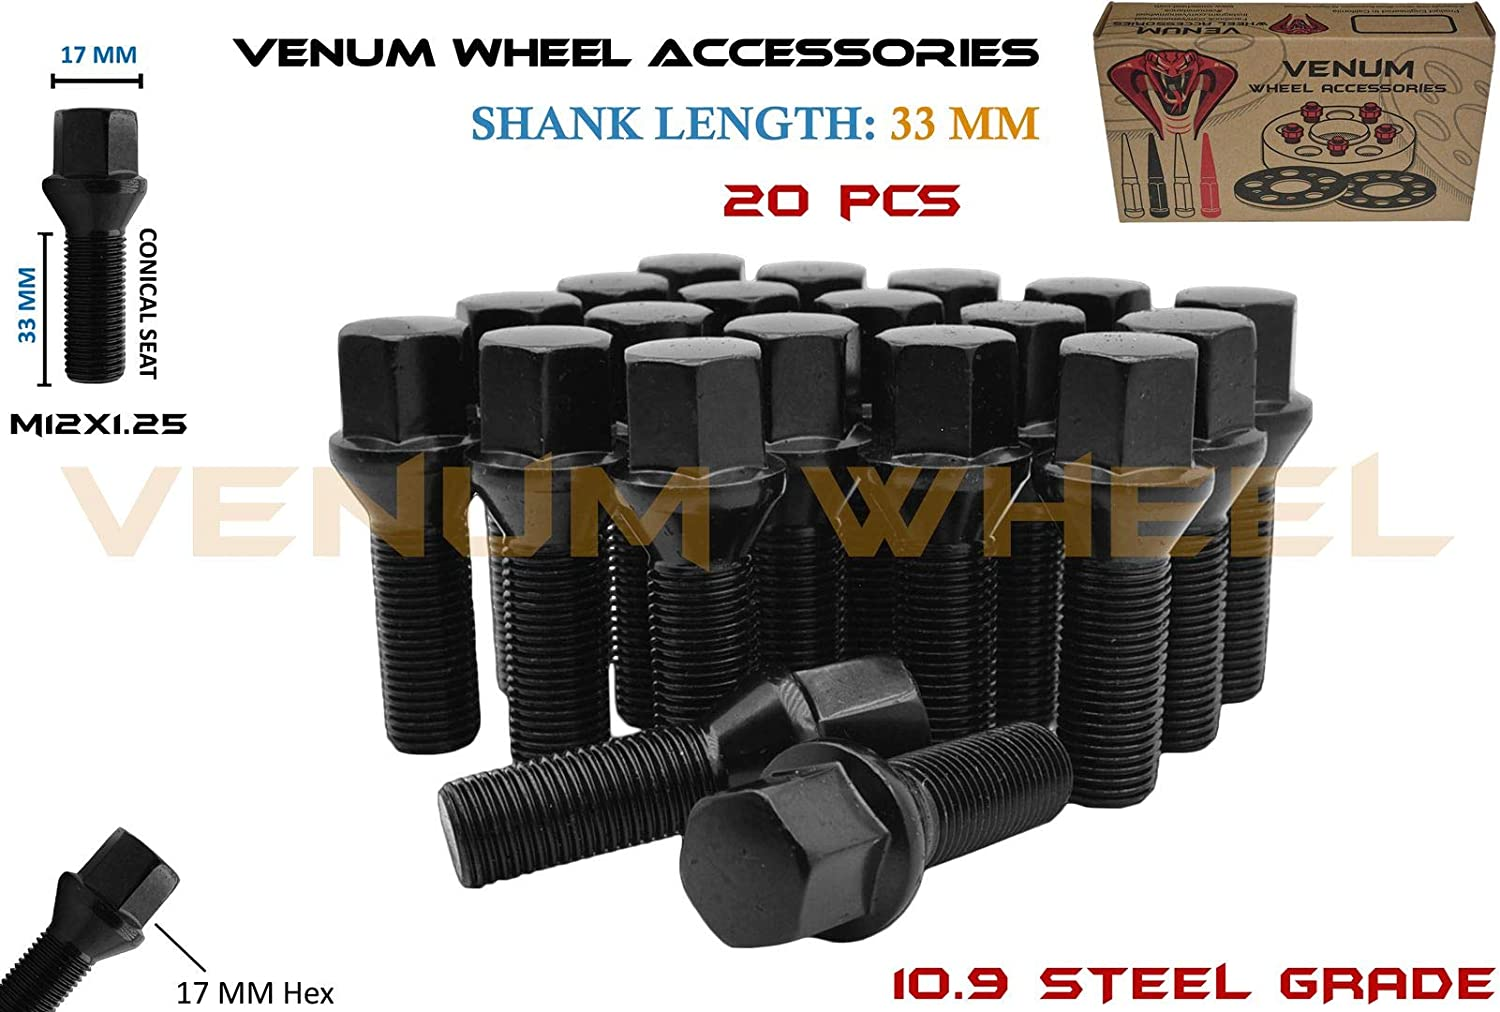 Complete Set of M12x1.25 Black Powder Coated Tapered Conical Seat Lug Bolts 33 MM Extended Shank Length Works With Jeep Fiat Dodge Chrysler Alfa Romeo Factory & Aftermarket Wheels